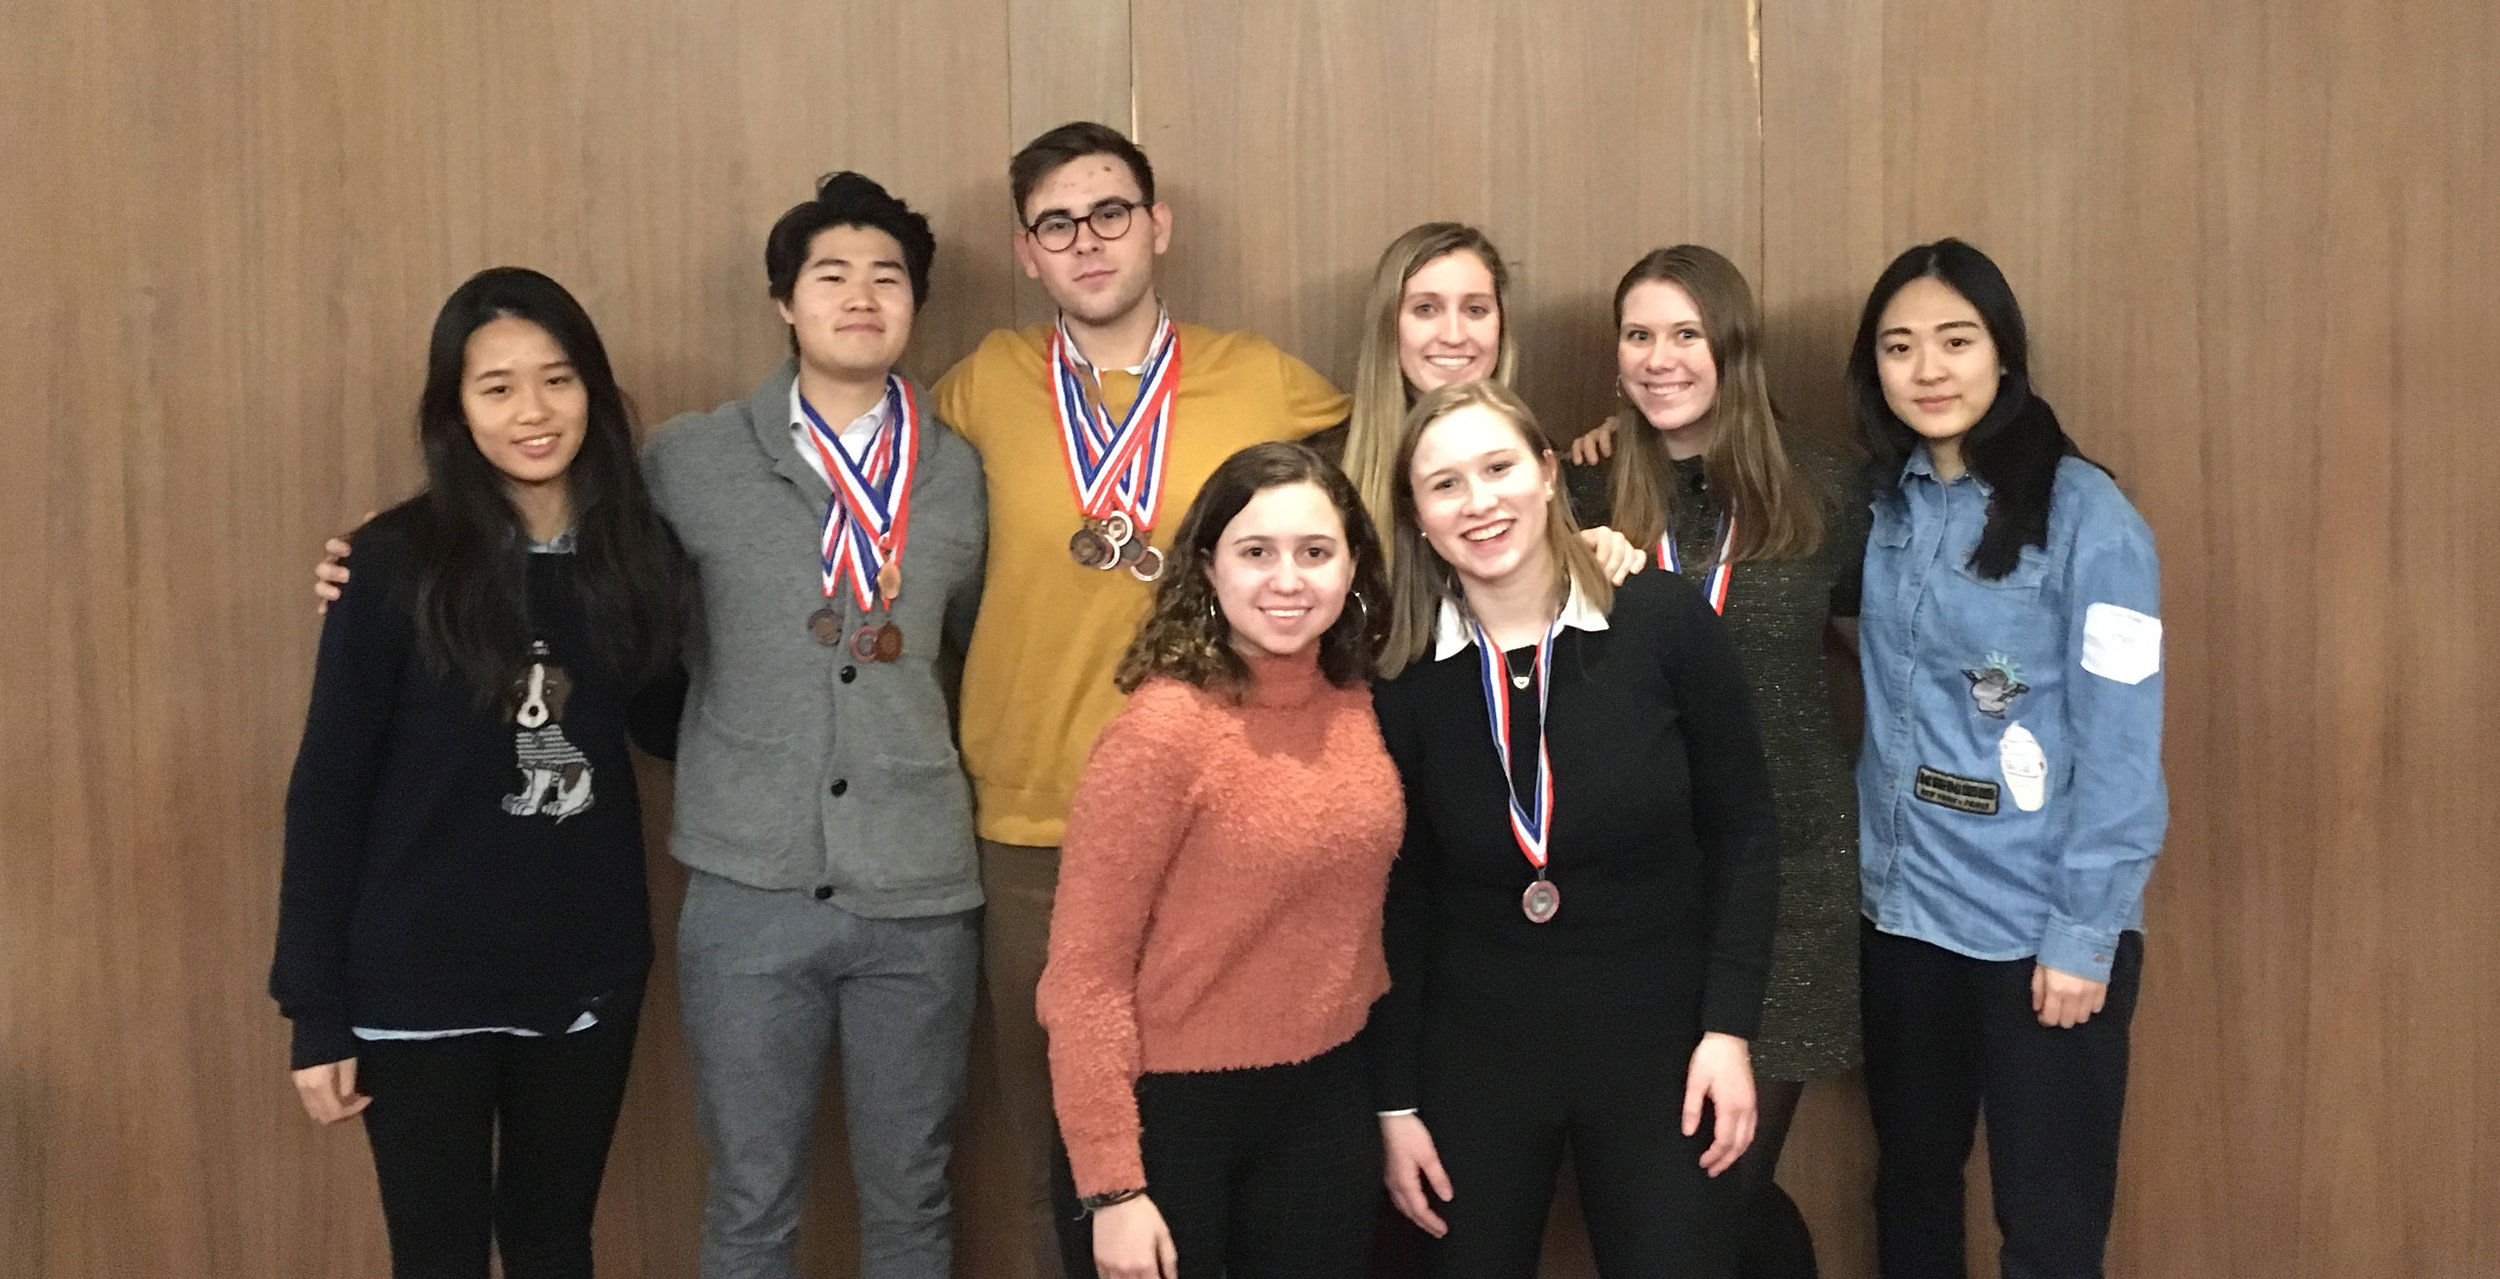 The 2018-2019 Academic Decathlon team pose with their medals following the Indiana state competition at Purdue University, Februrary 9, 2019. Left to right, back row: Winnie Liang, Ben Park, Dylan Palffy, Molly Caplice, Elaine Jensen, Amy Wang. Front row: Judy Ulayyet, Charlotte Visconsi.